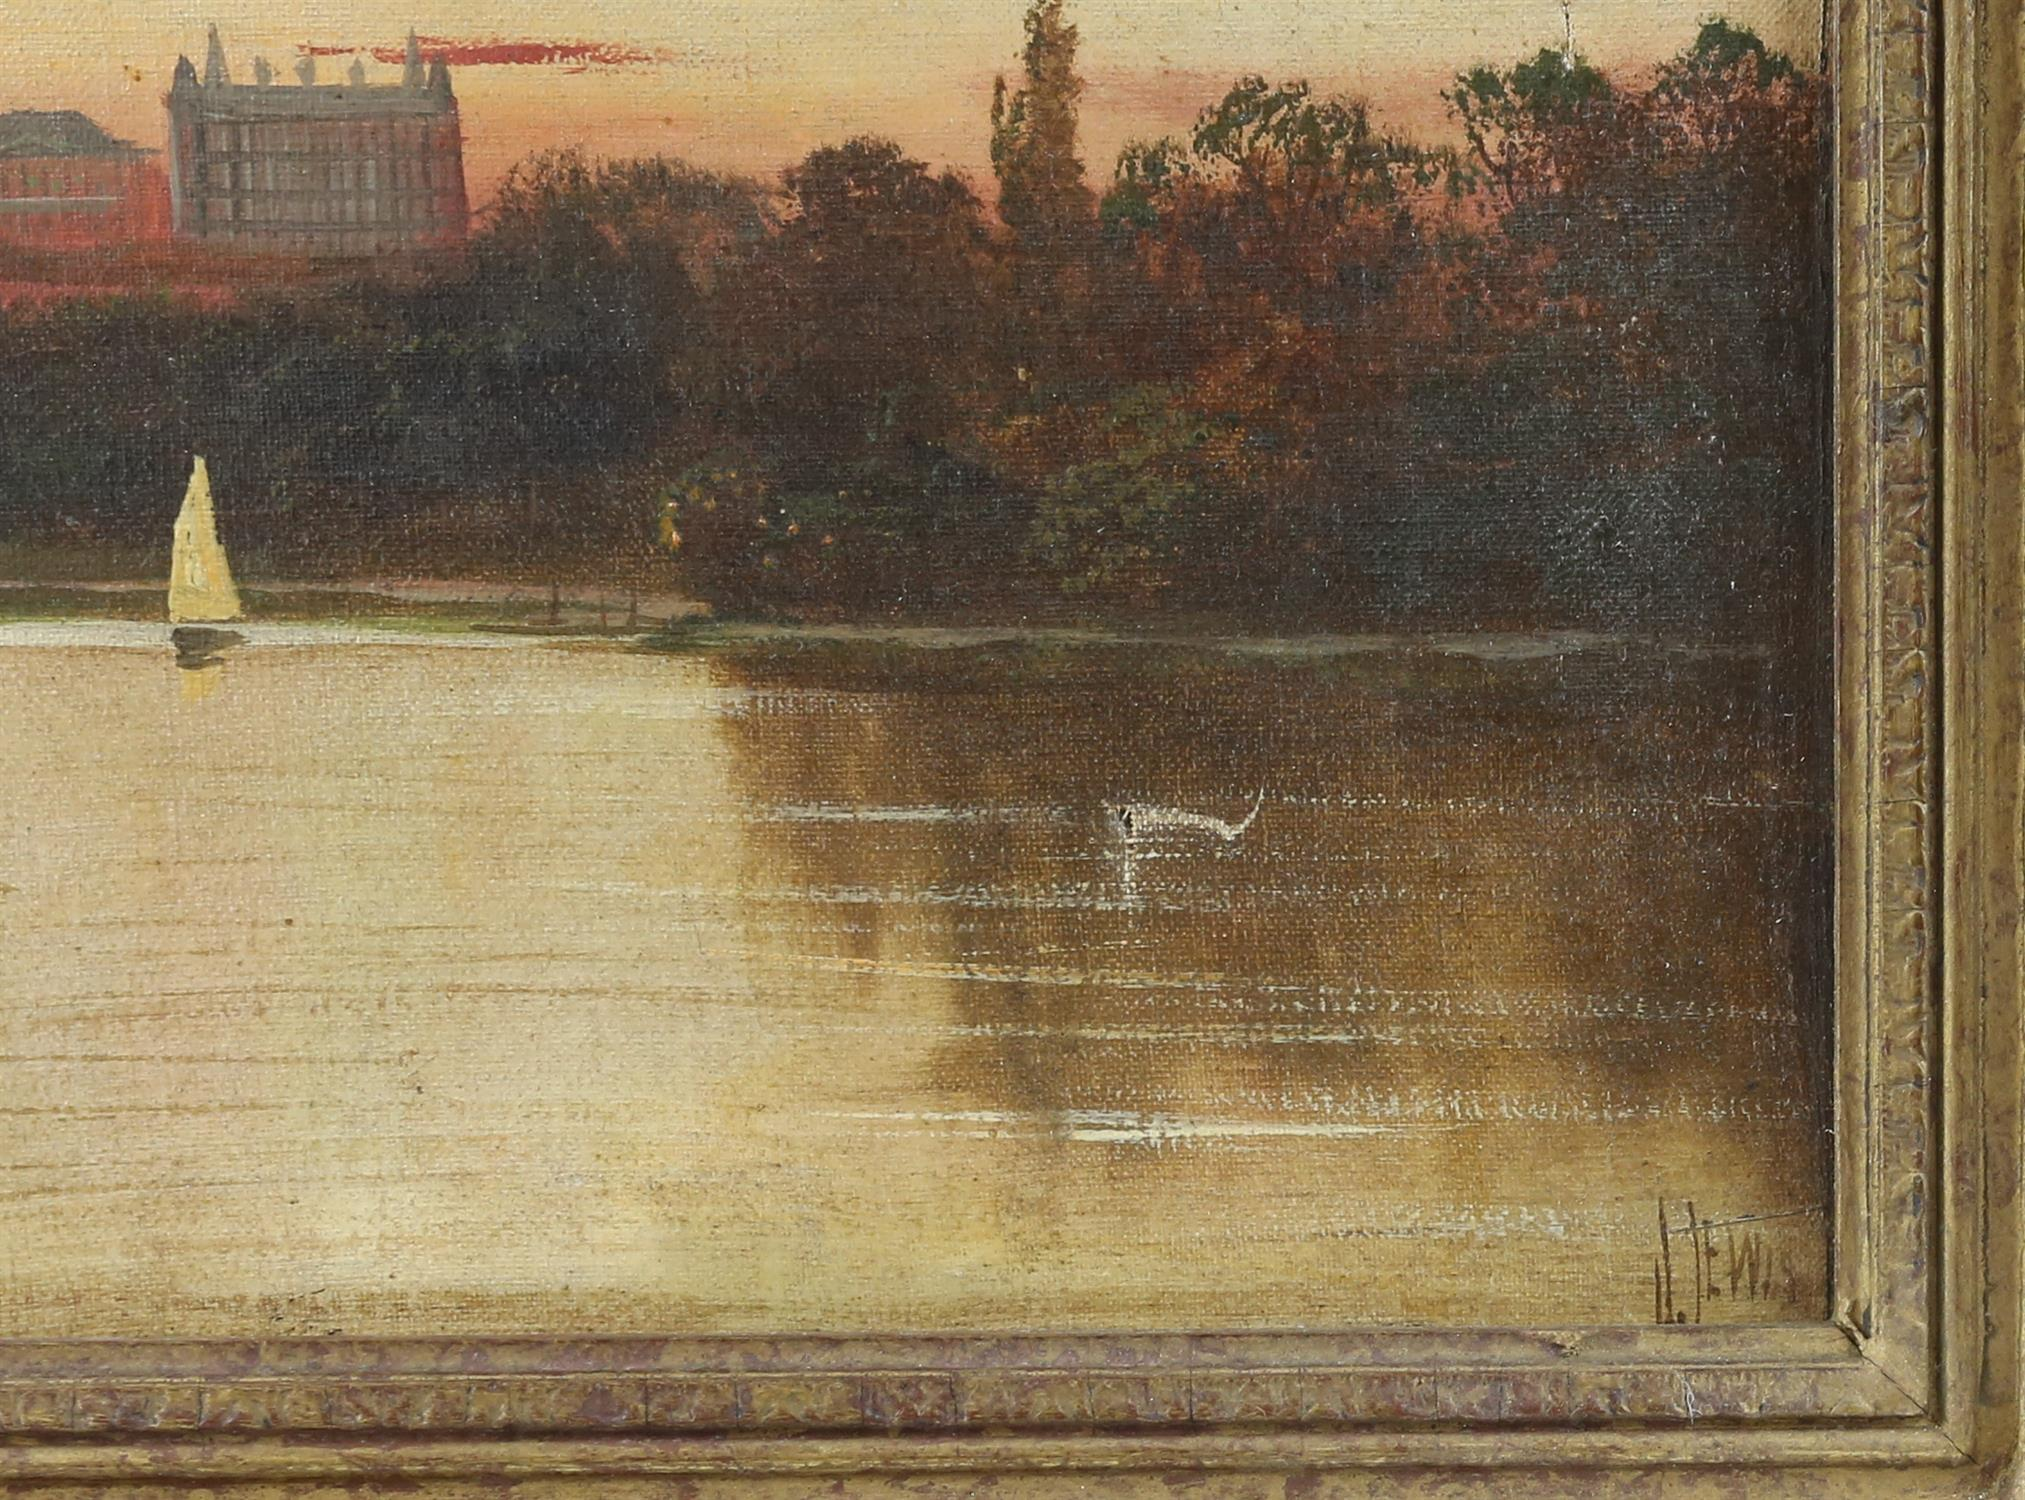 James Isiah Lewis (British, 1860-1934), Star and Garter, Richmond on Thames, View from Marble Hill - Image 3 of 5